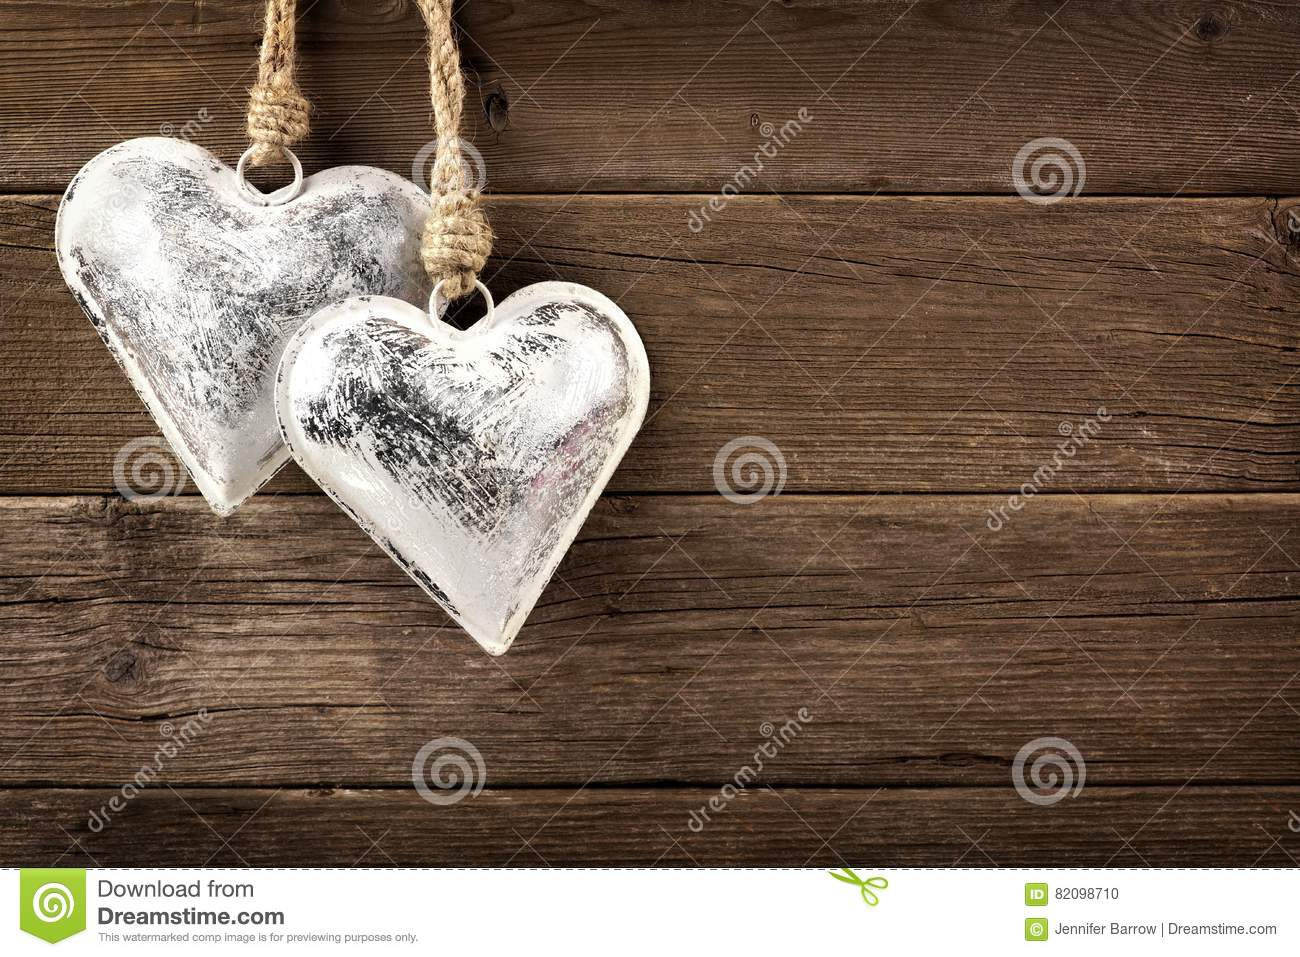 Metal heart ornaments - Two Rustic Metal Heart Ornaments Hanging On Wood